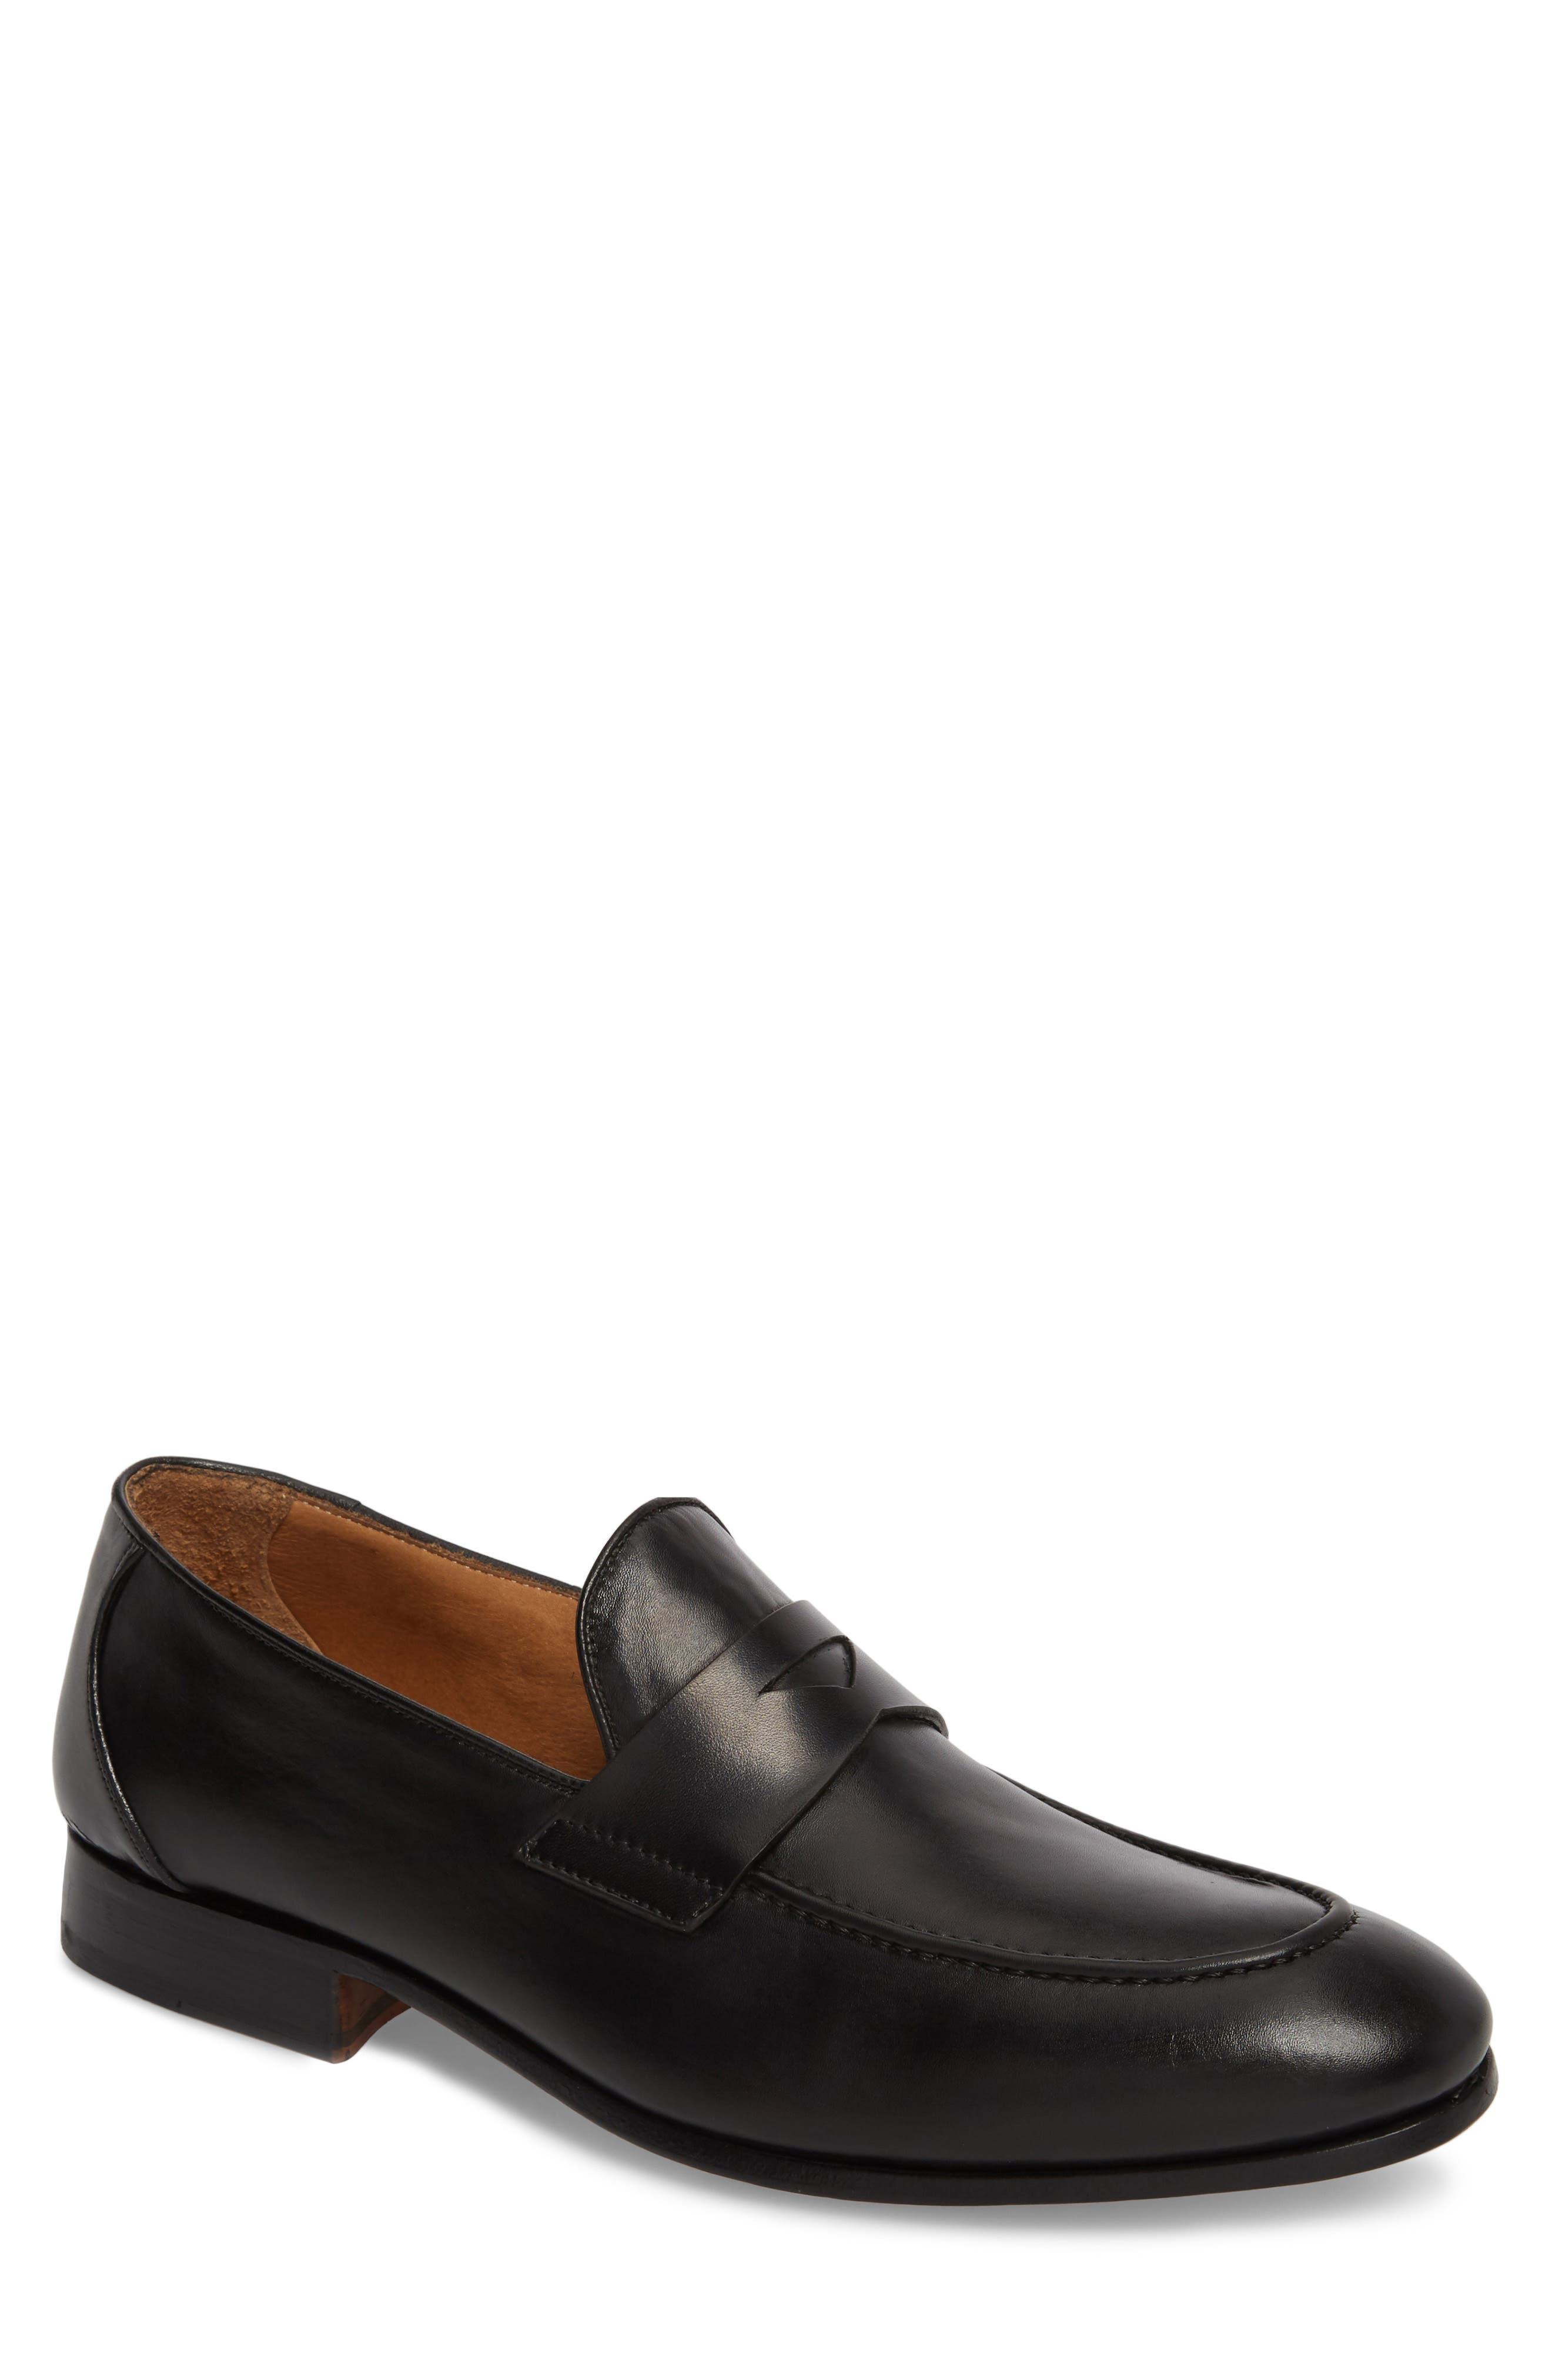 Alejo Apron Toe Penny Loafer,                         Main,                         color, BLACK LEATHER